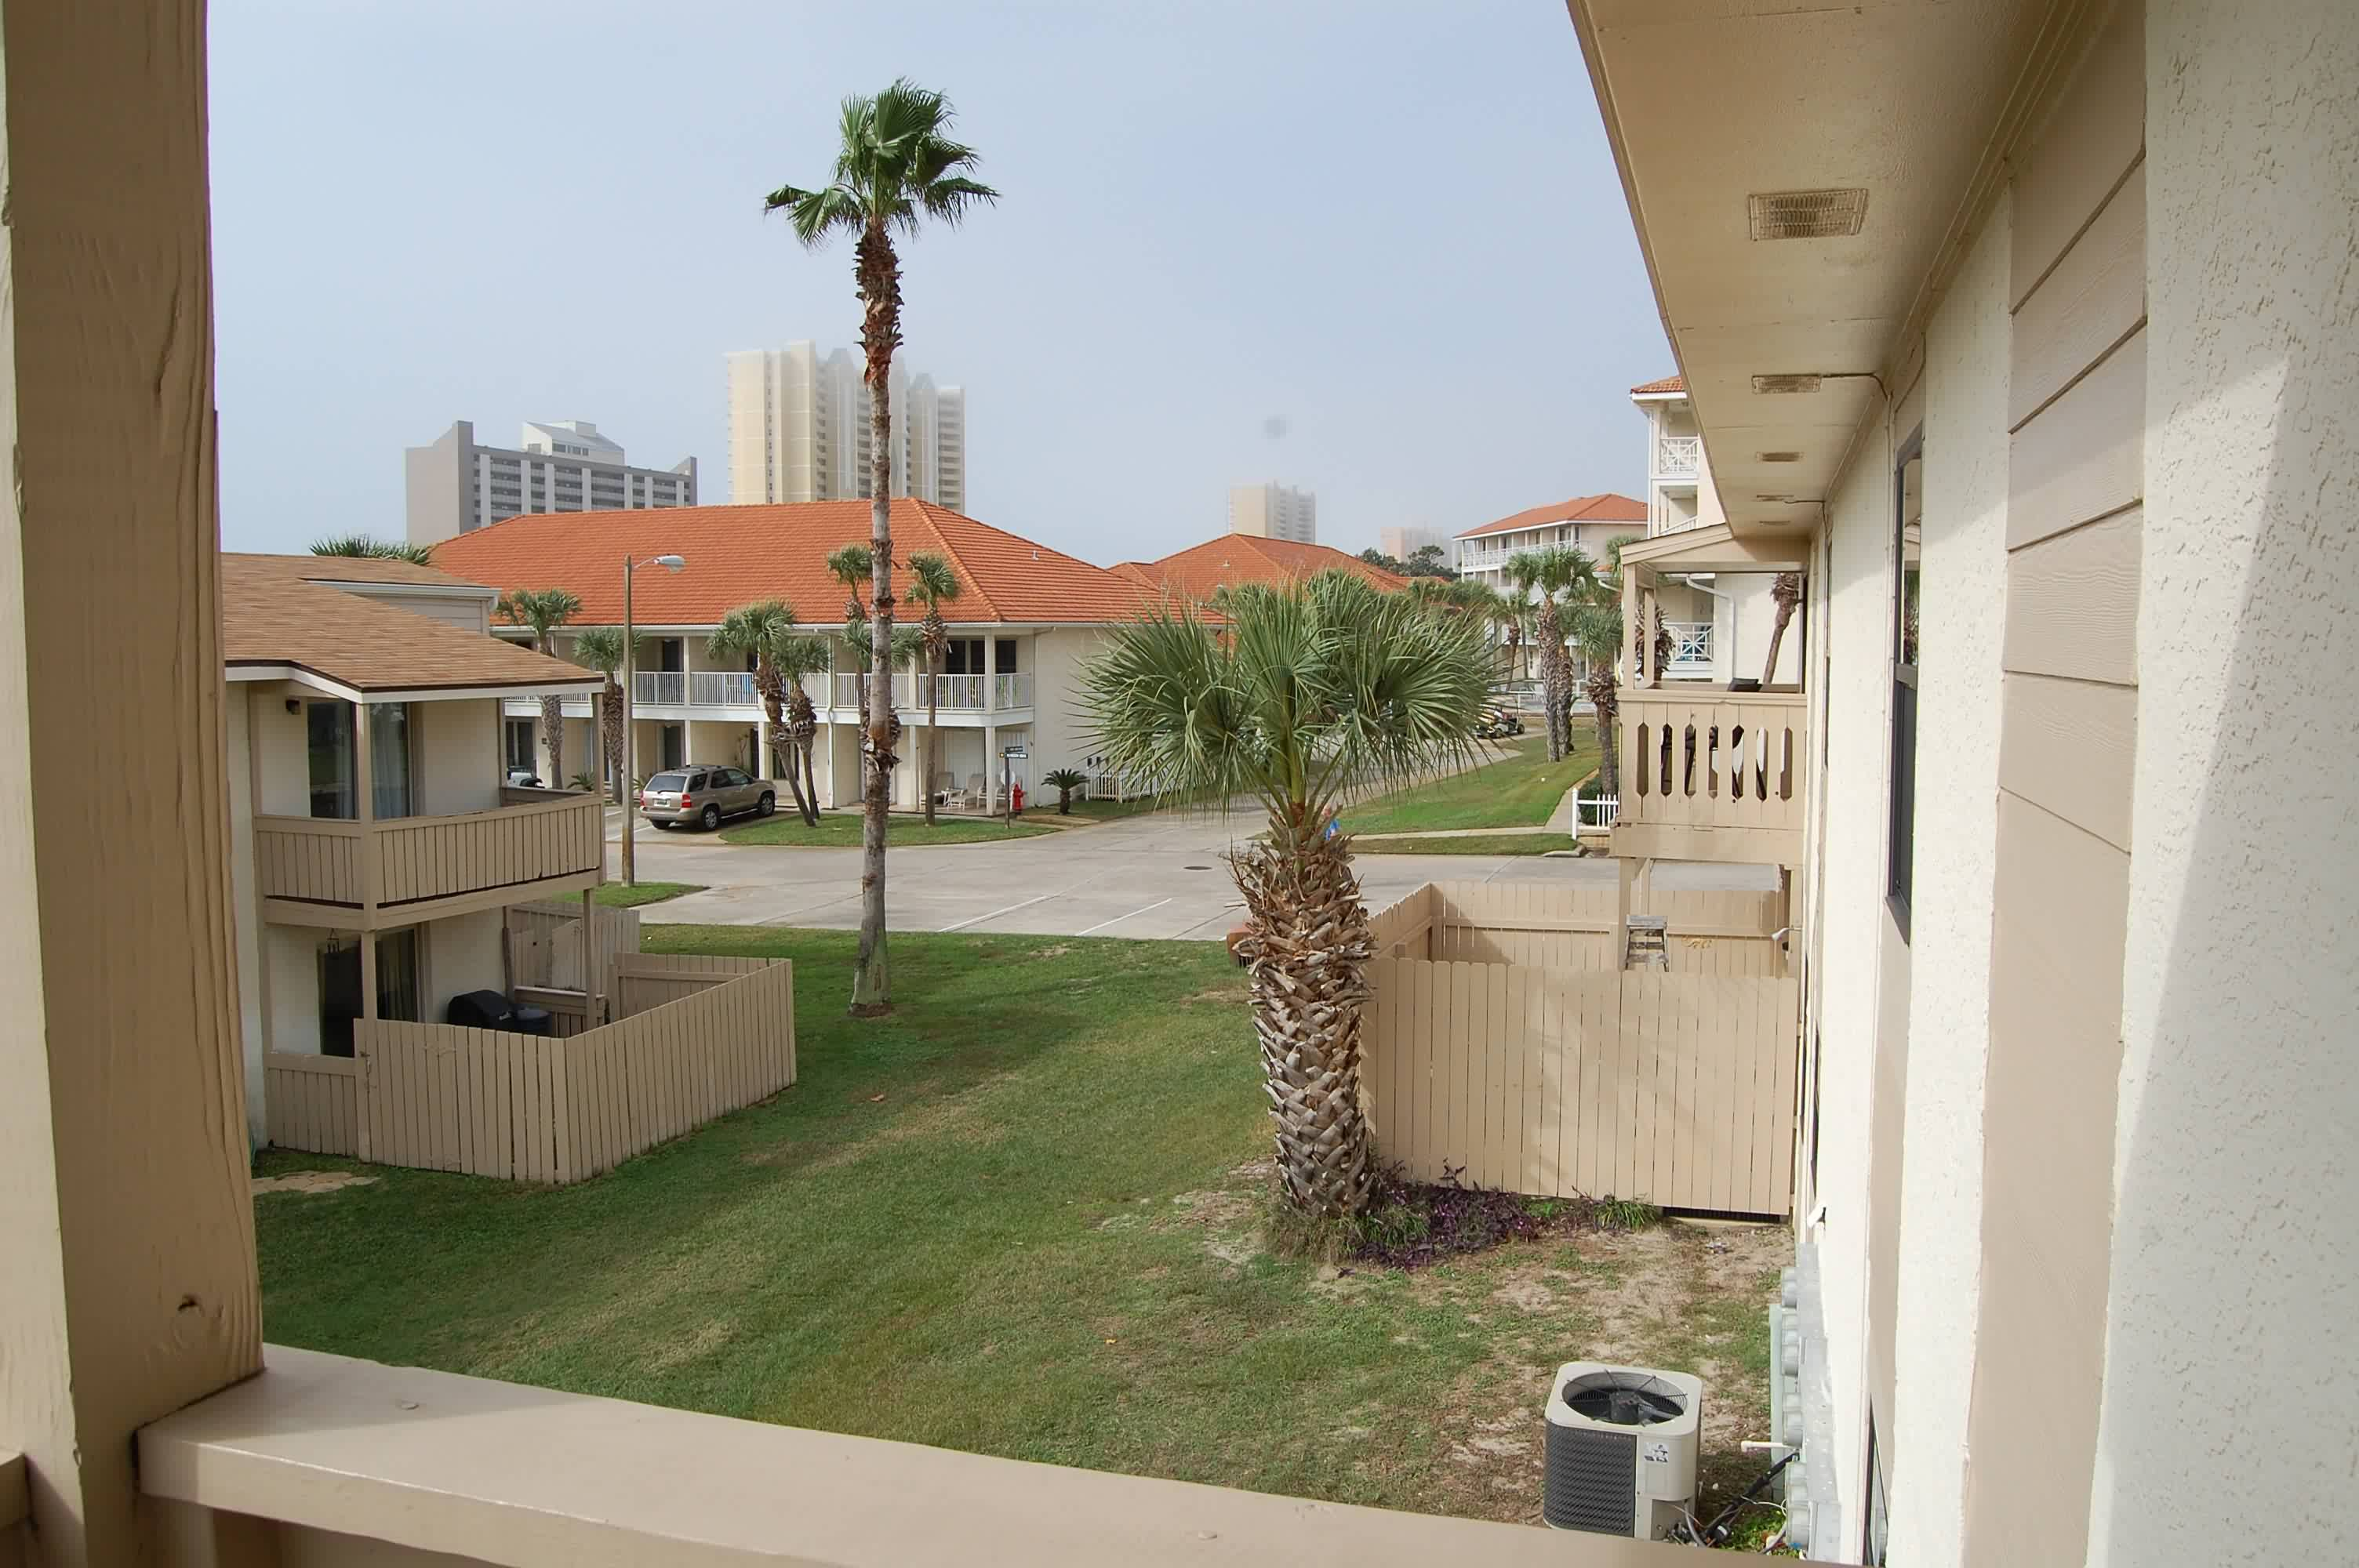 Master bedroom balcony view to the west